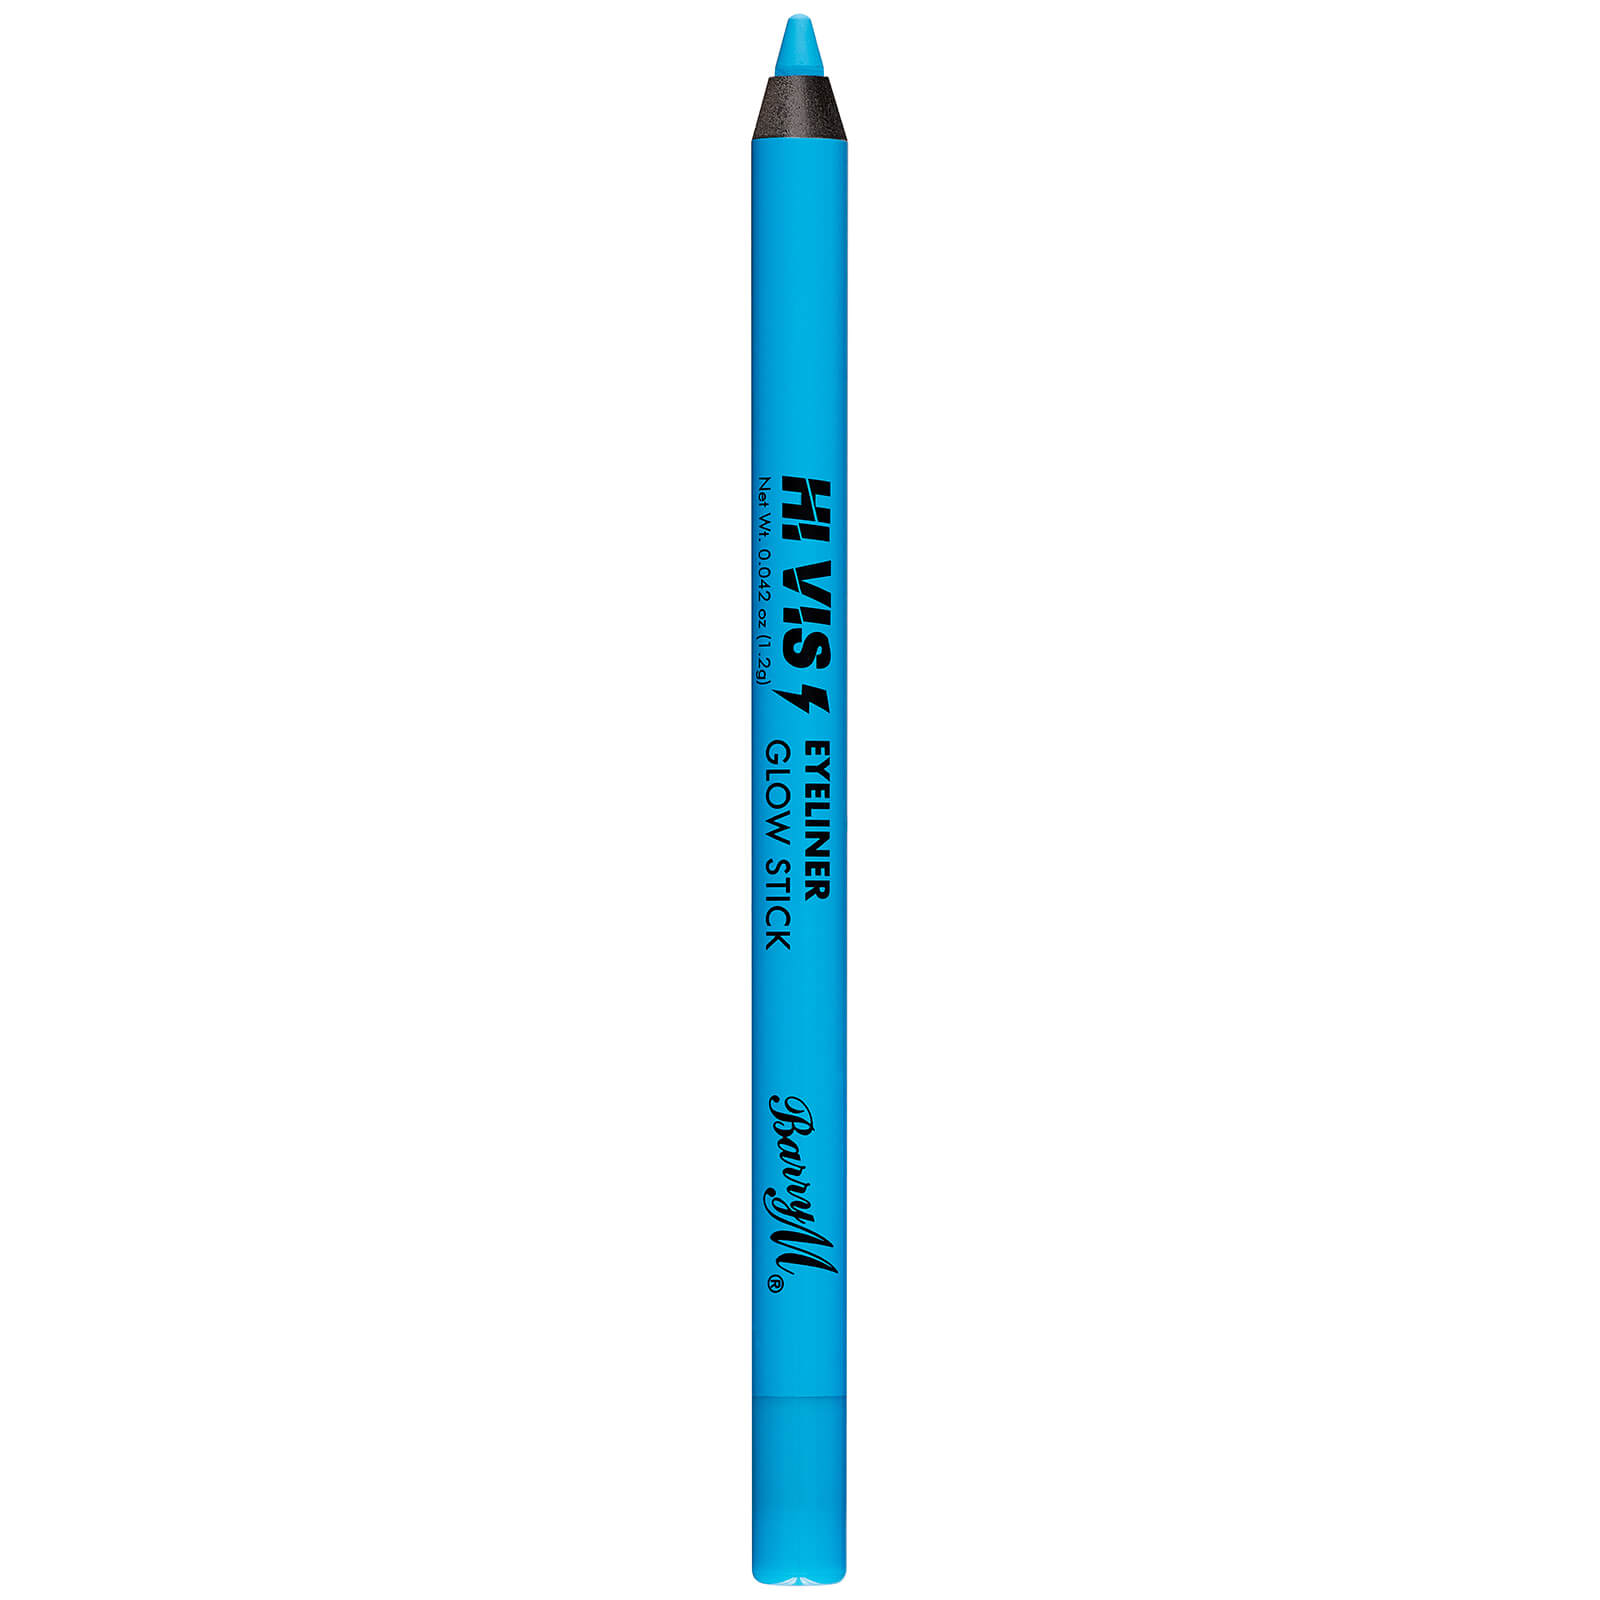 Купить Barry M Cosmetics Hi Vis Bold Waterproof Eyeliner 1.2g (Various Shades) - Glow Stick